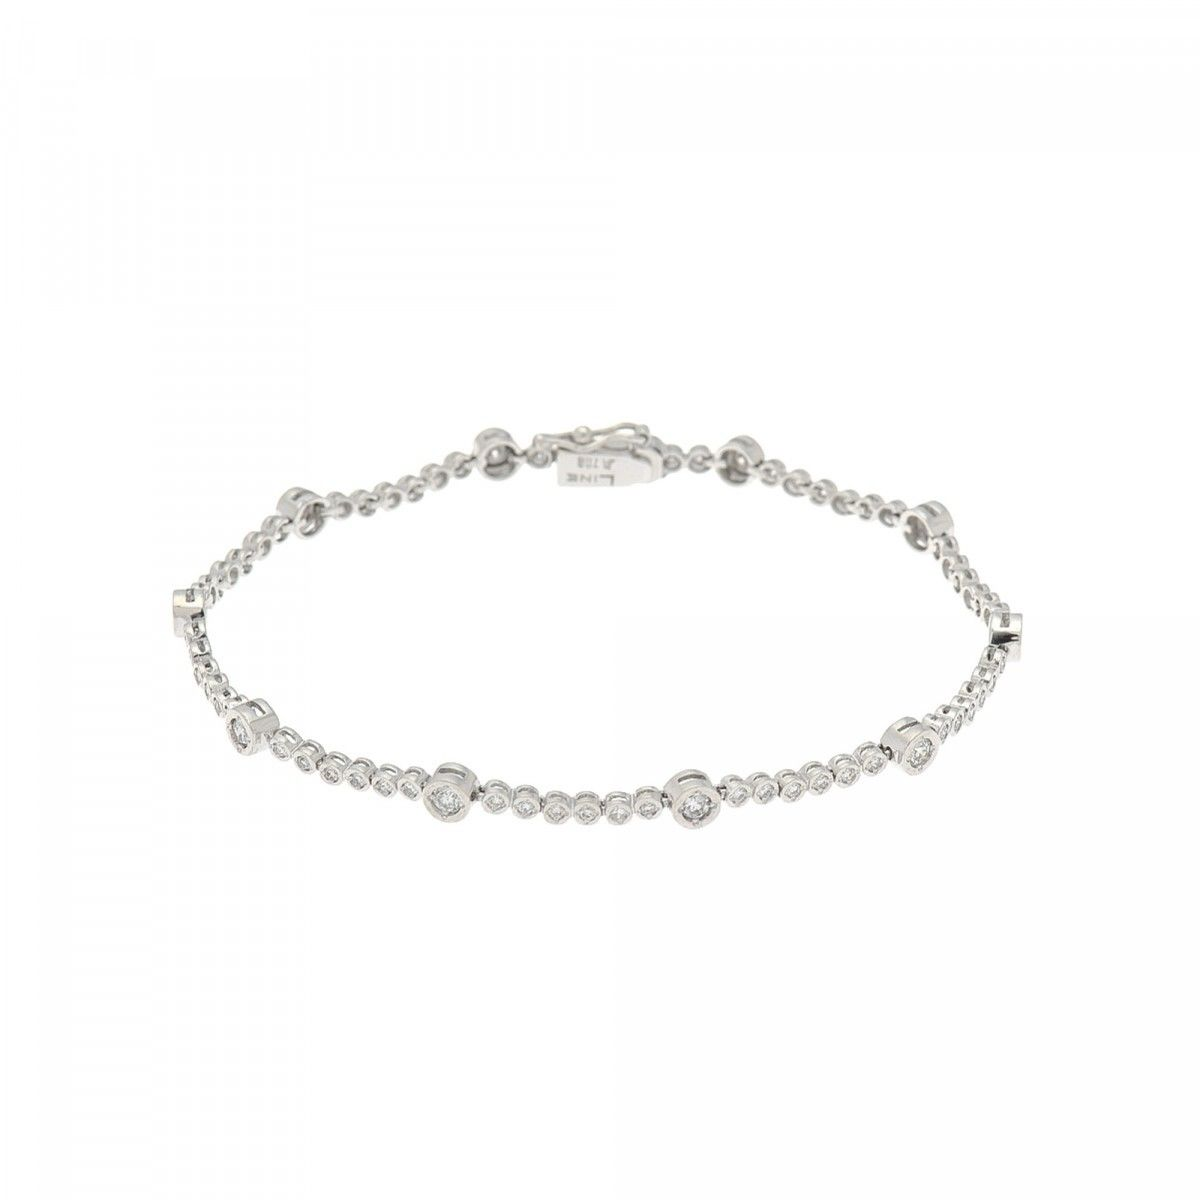 d diamond bracelet bangles bangle white gold webstore ernest number product jones